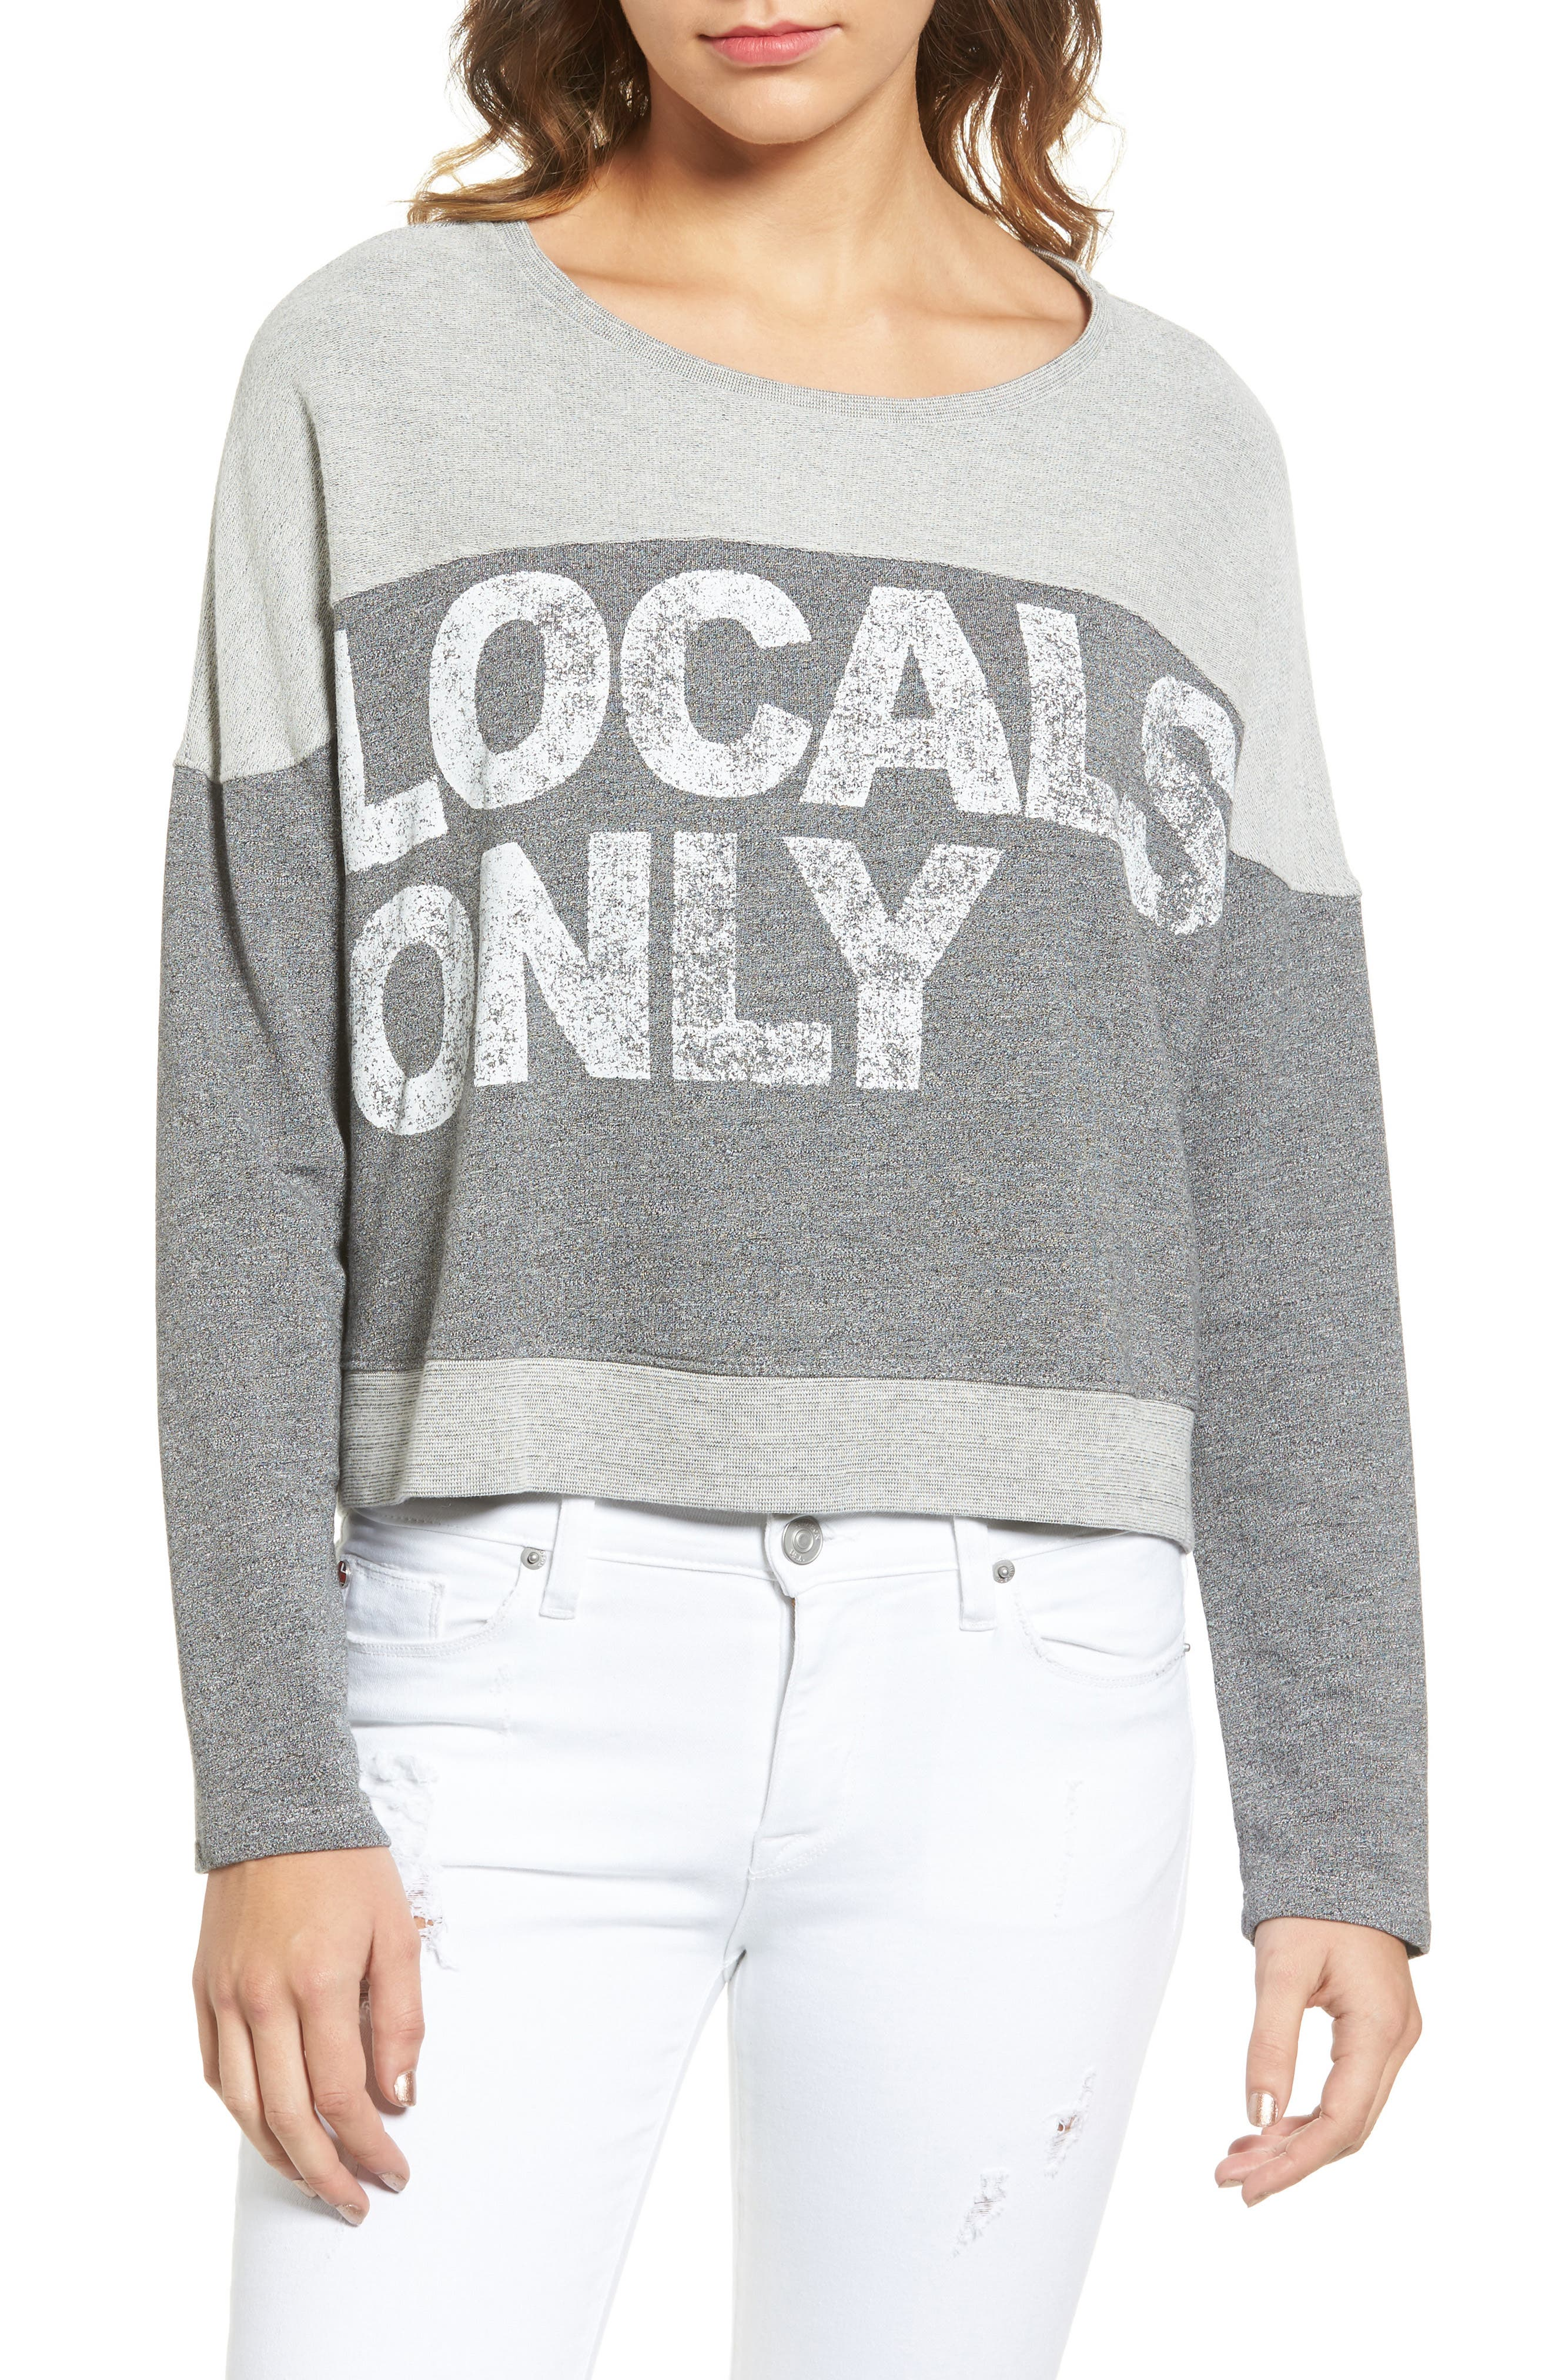 SUNDRY,                             Locals Only Crop Pullover,                             Main thumbnail 1, color,                             039